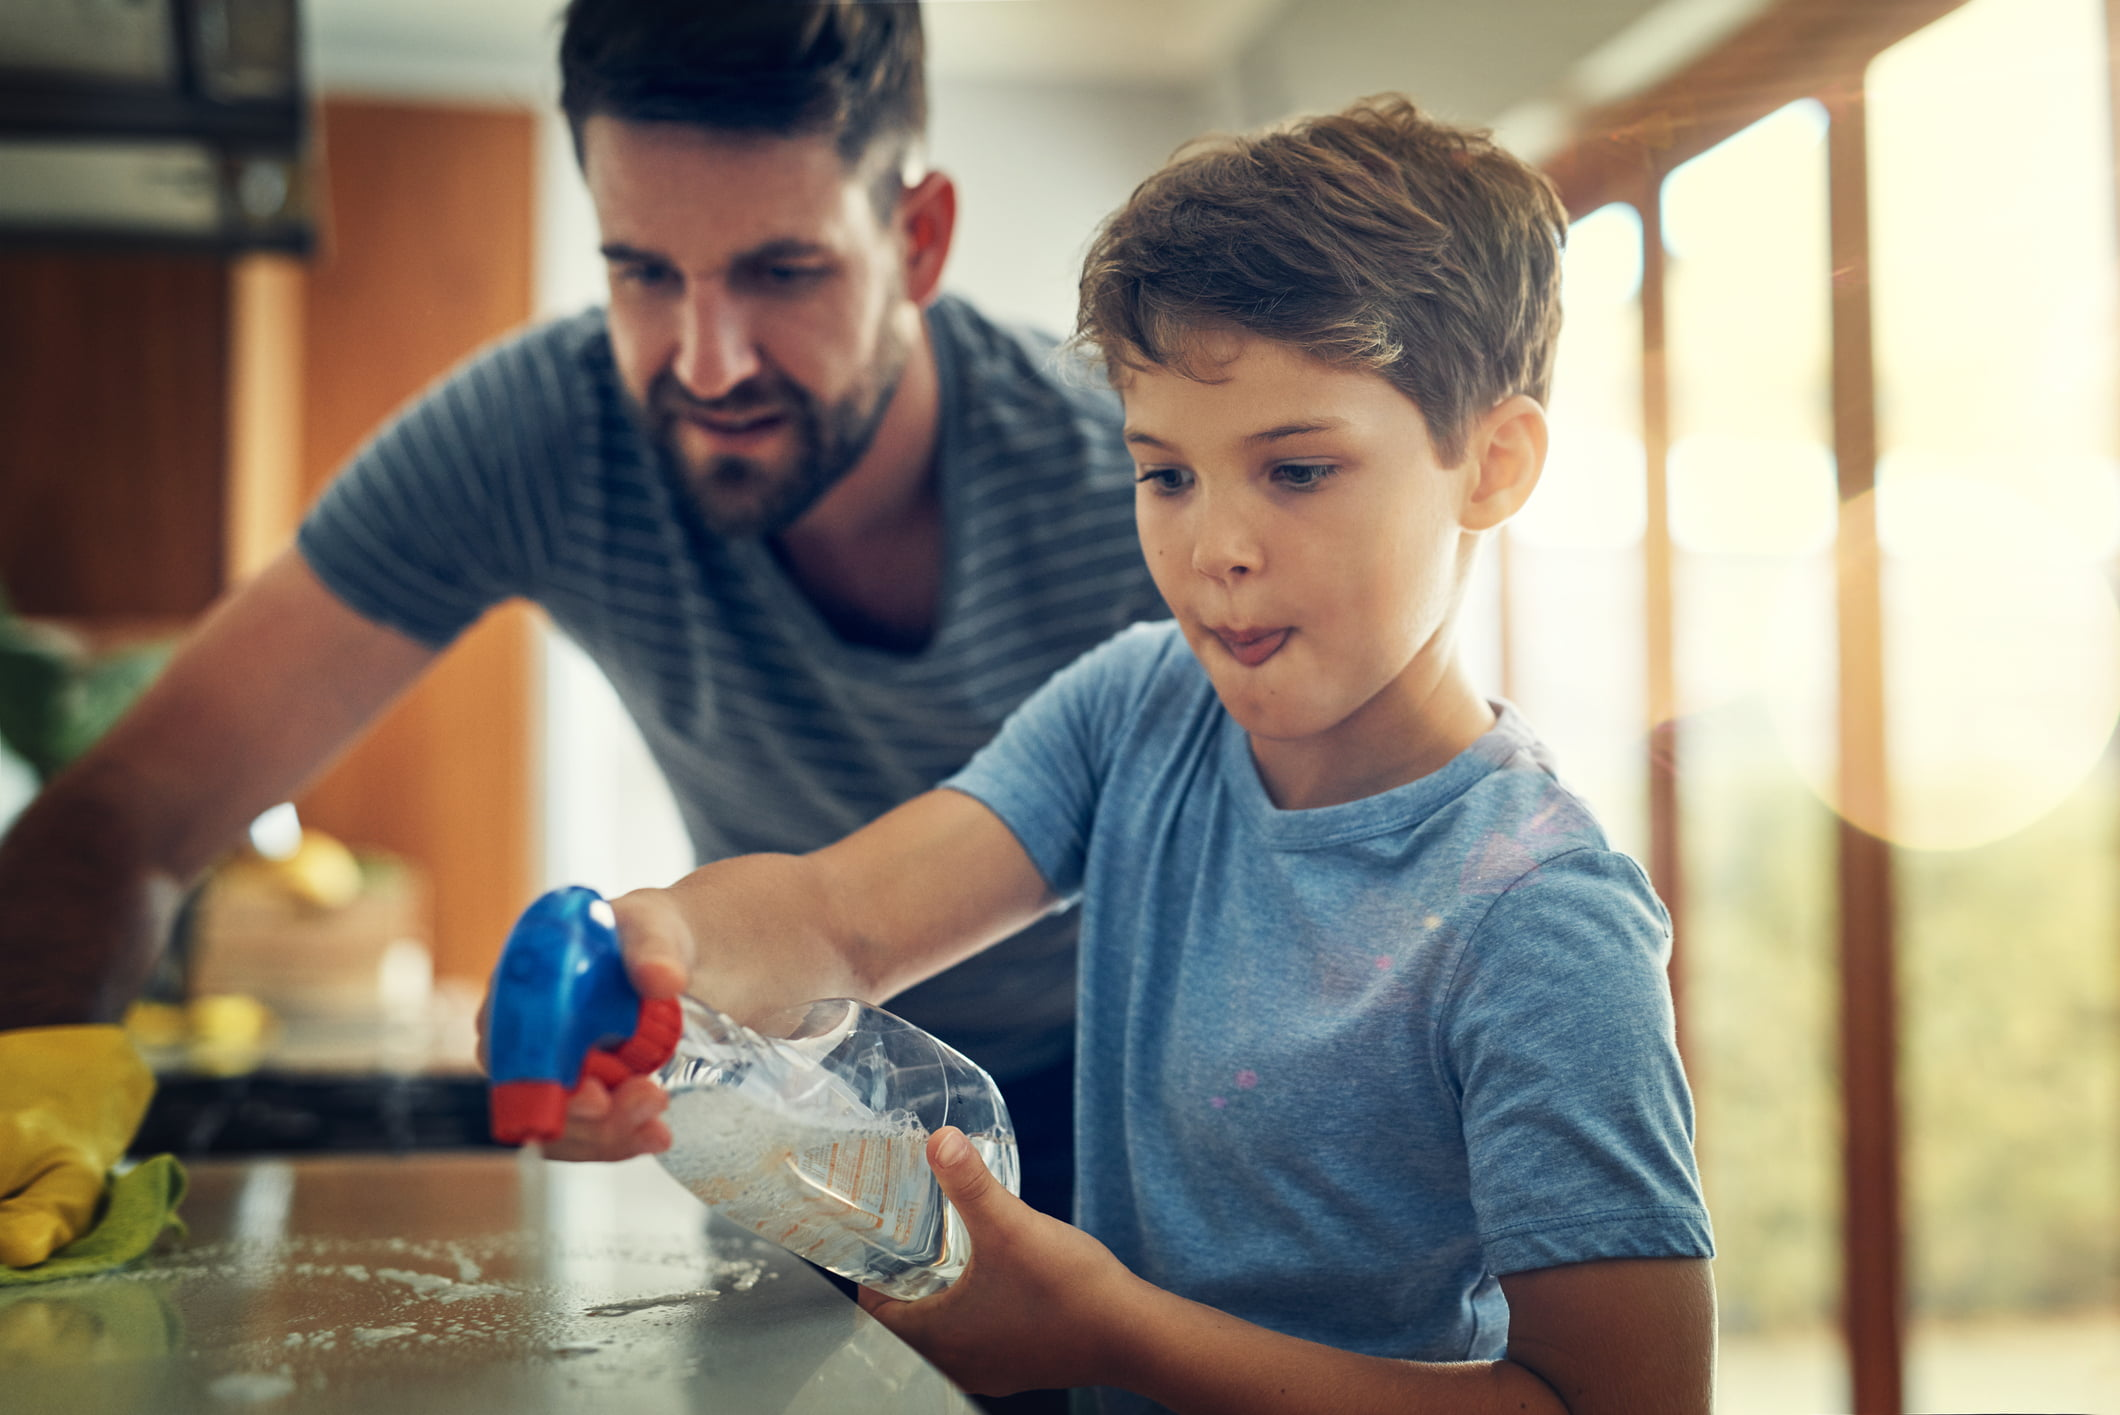 Shot of a father and son cleaning the kitchen counter together at home